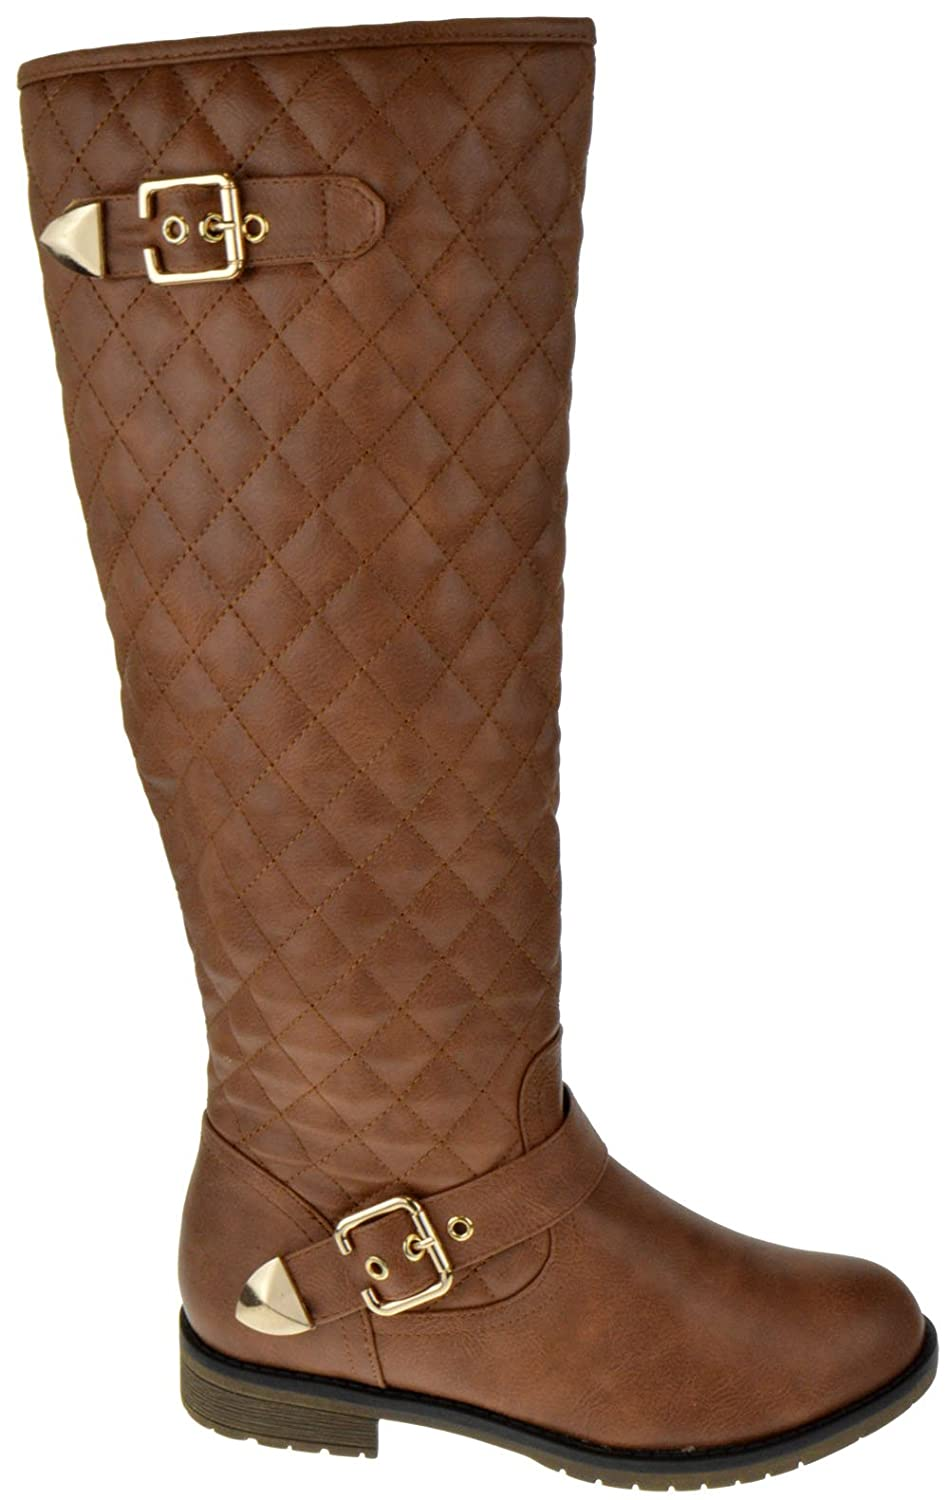 3c98d6d57bf1 Amazon.com | TOP Moda Dish 2 Leather Knee High Quilted Buckle Up Boots Tan  | Knee-High